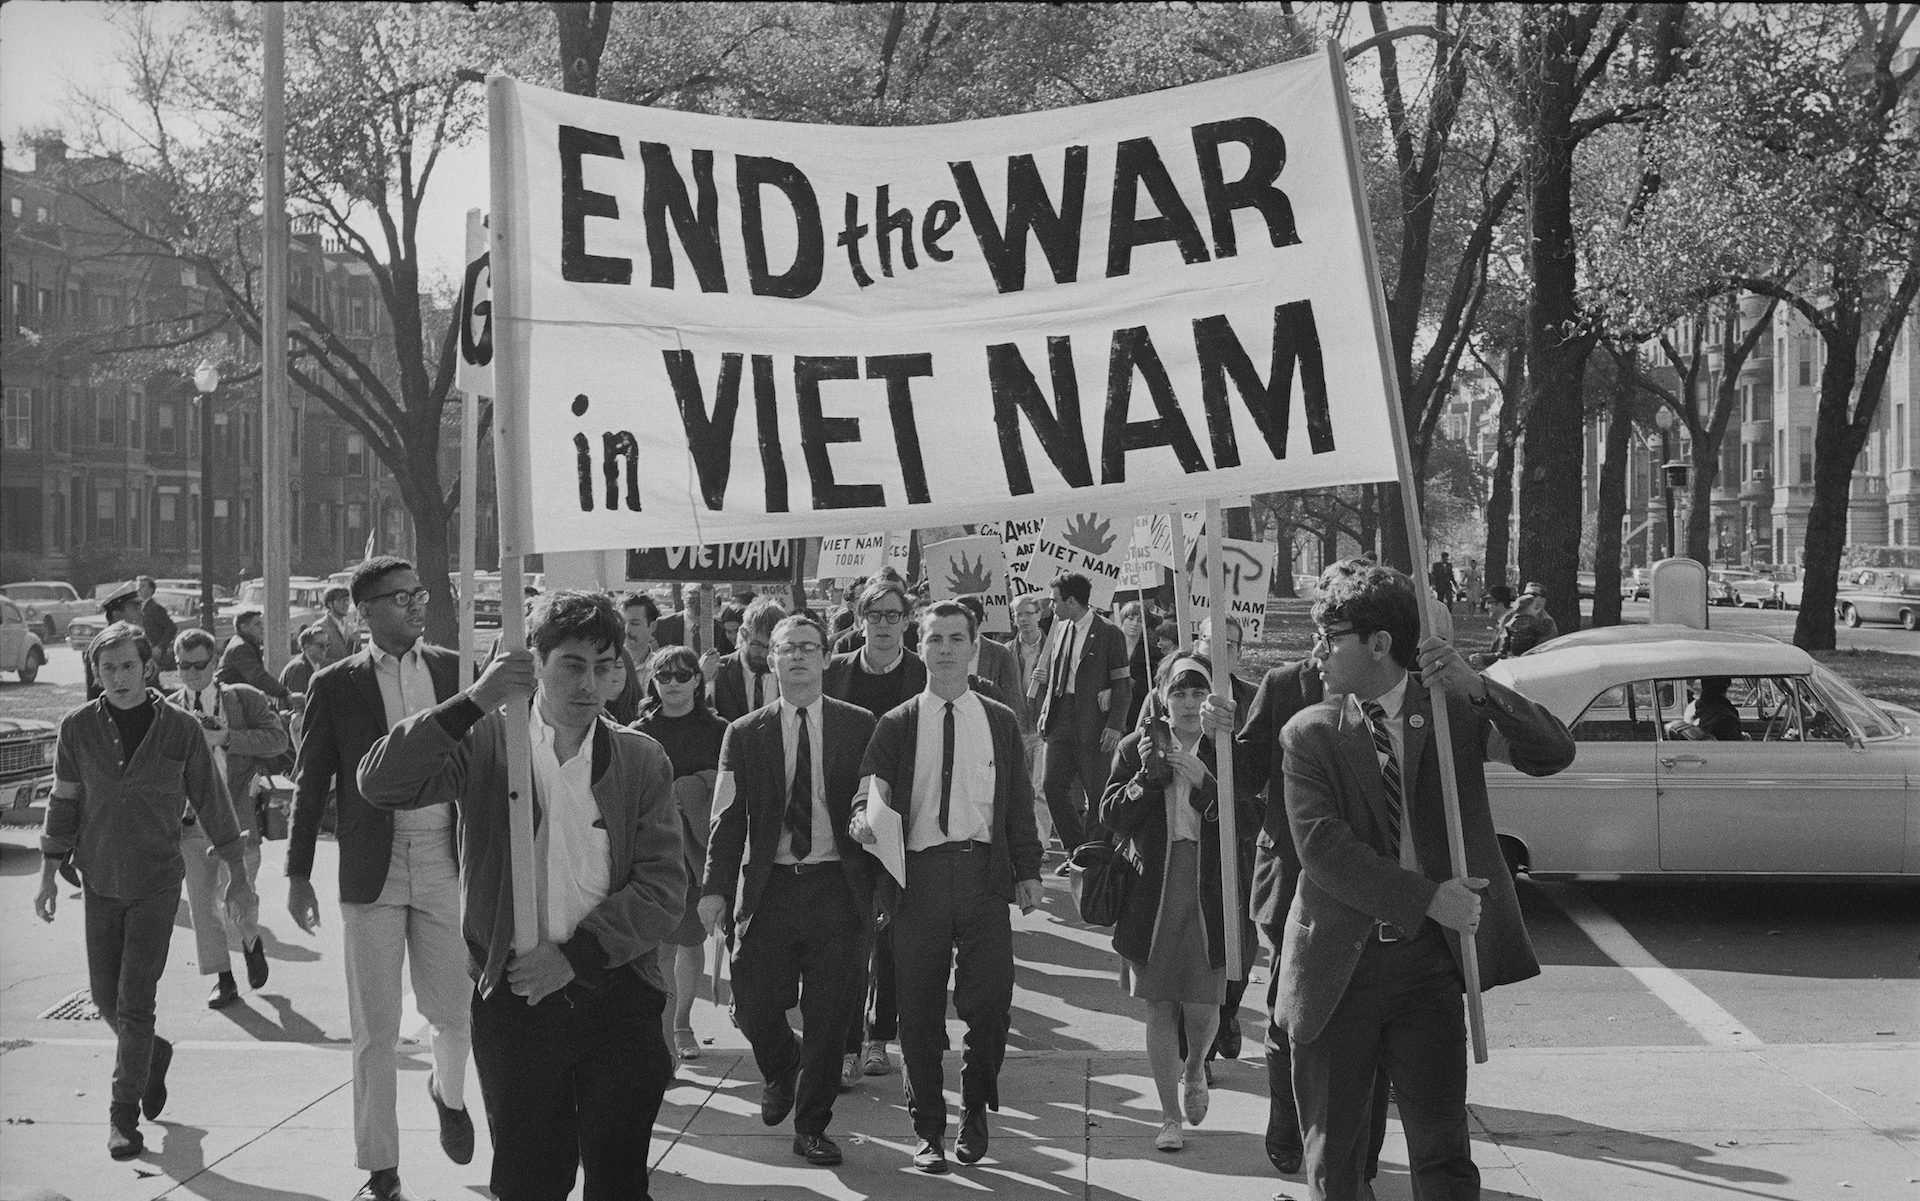 The Vietnam War: Resolve